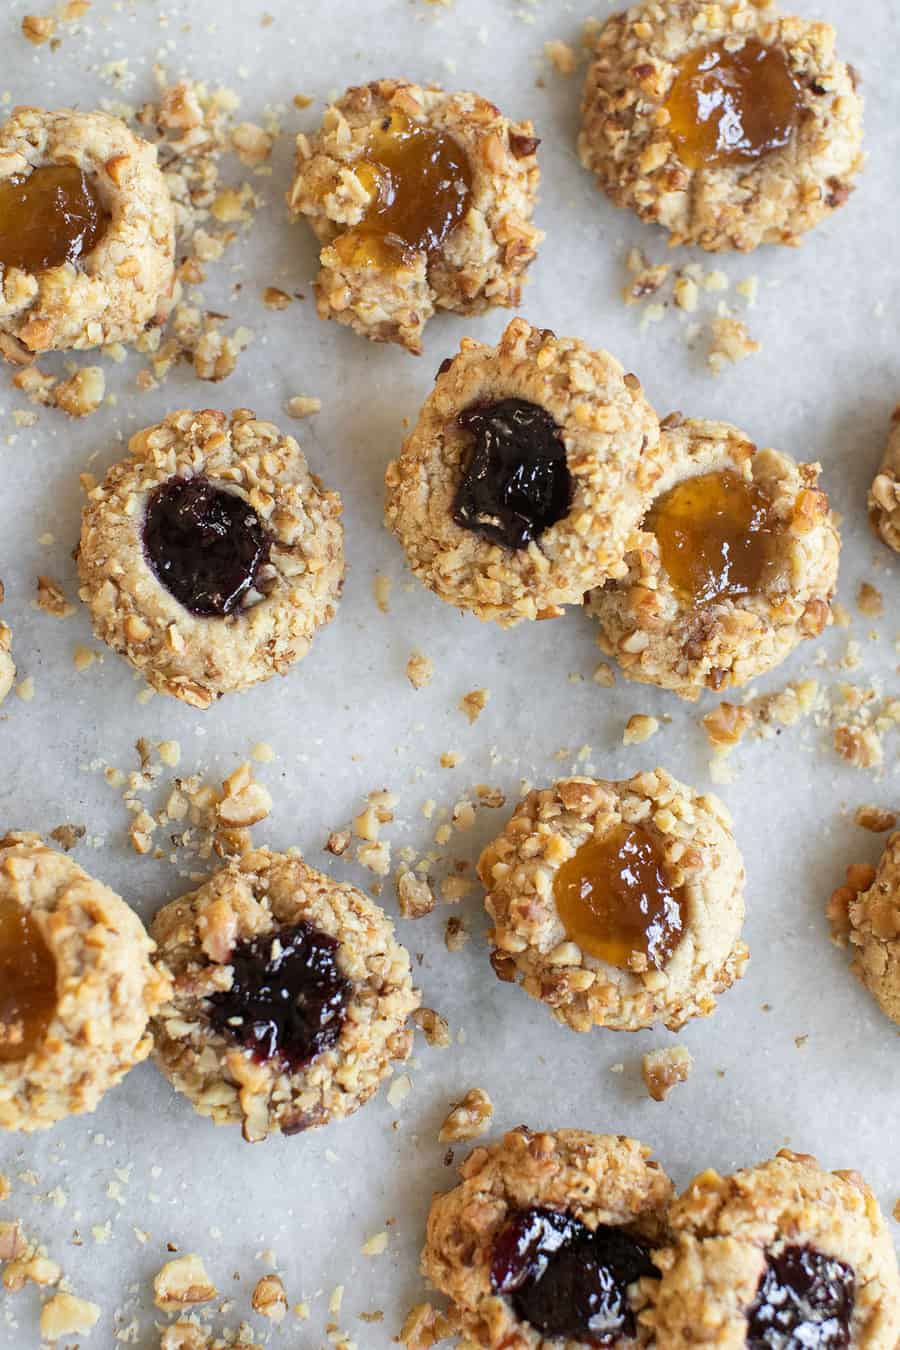 Thumbprint cookies filled with jam.